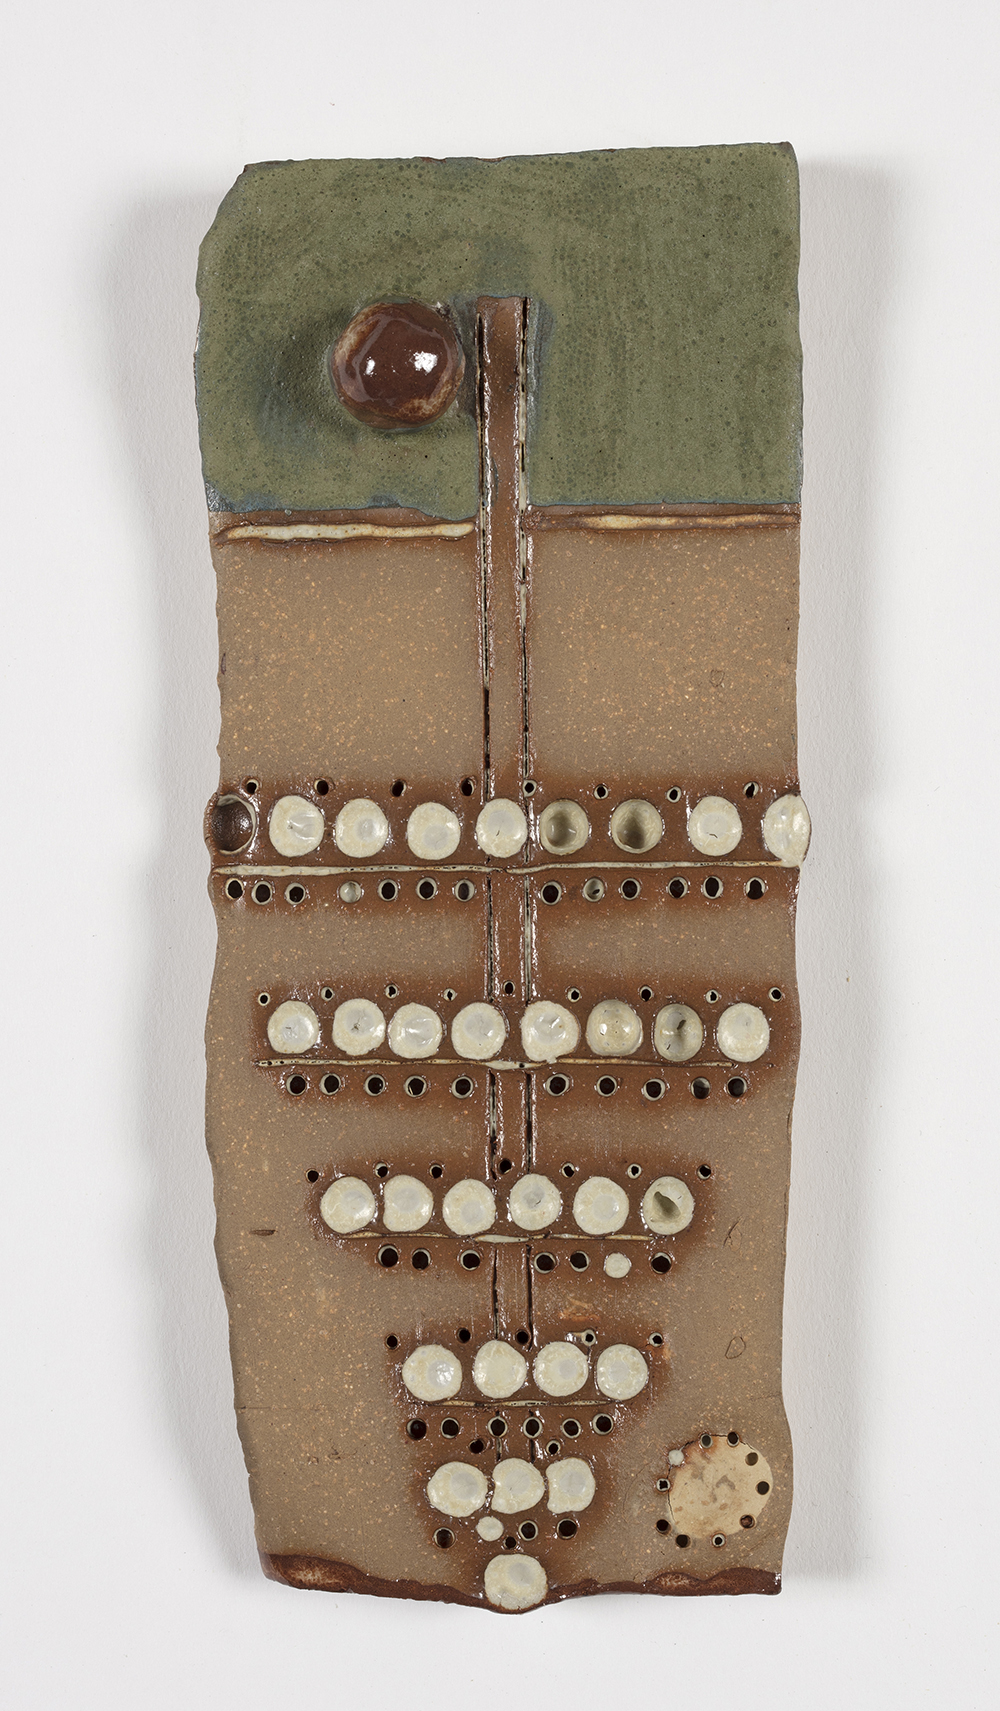 Kevin McNamee-Tweed.<em> Tree</em>, 2019. Glazed ceramic, 7 x 3 inches (17.8 x 7.6 cm)